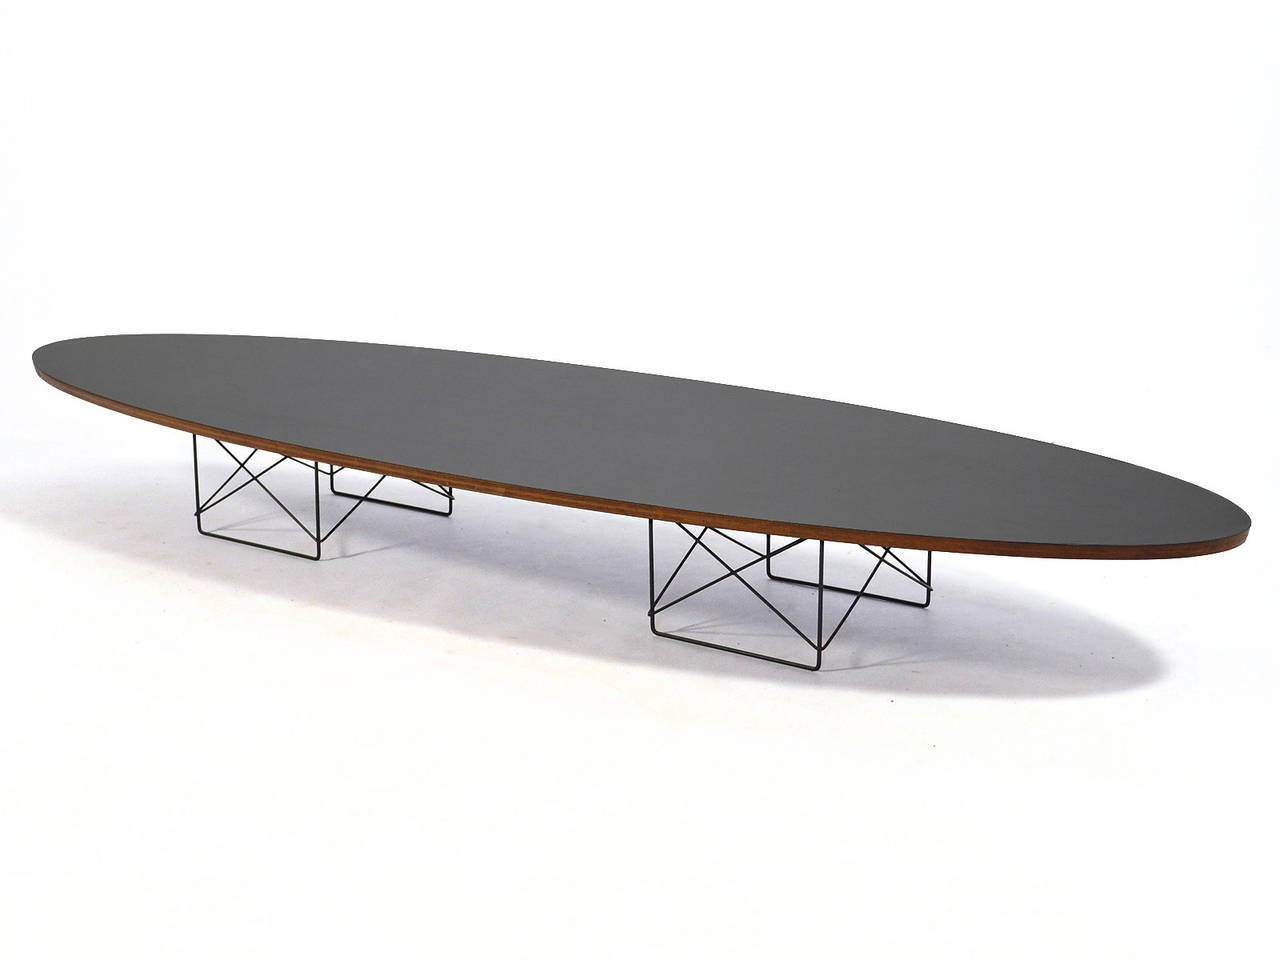 eames etr surfboard coffee table by herman miller at 1stdibs. Black Bedroom Furniture Sets. Home Design Ideas